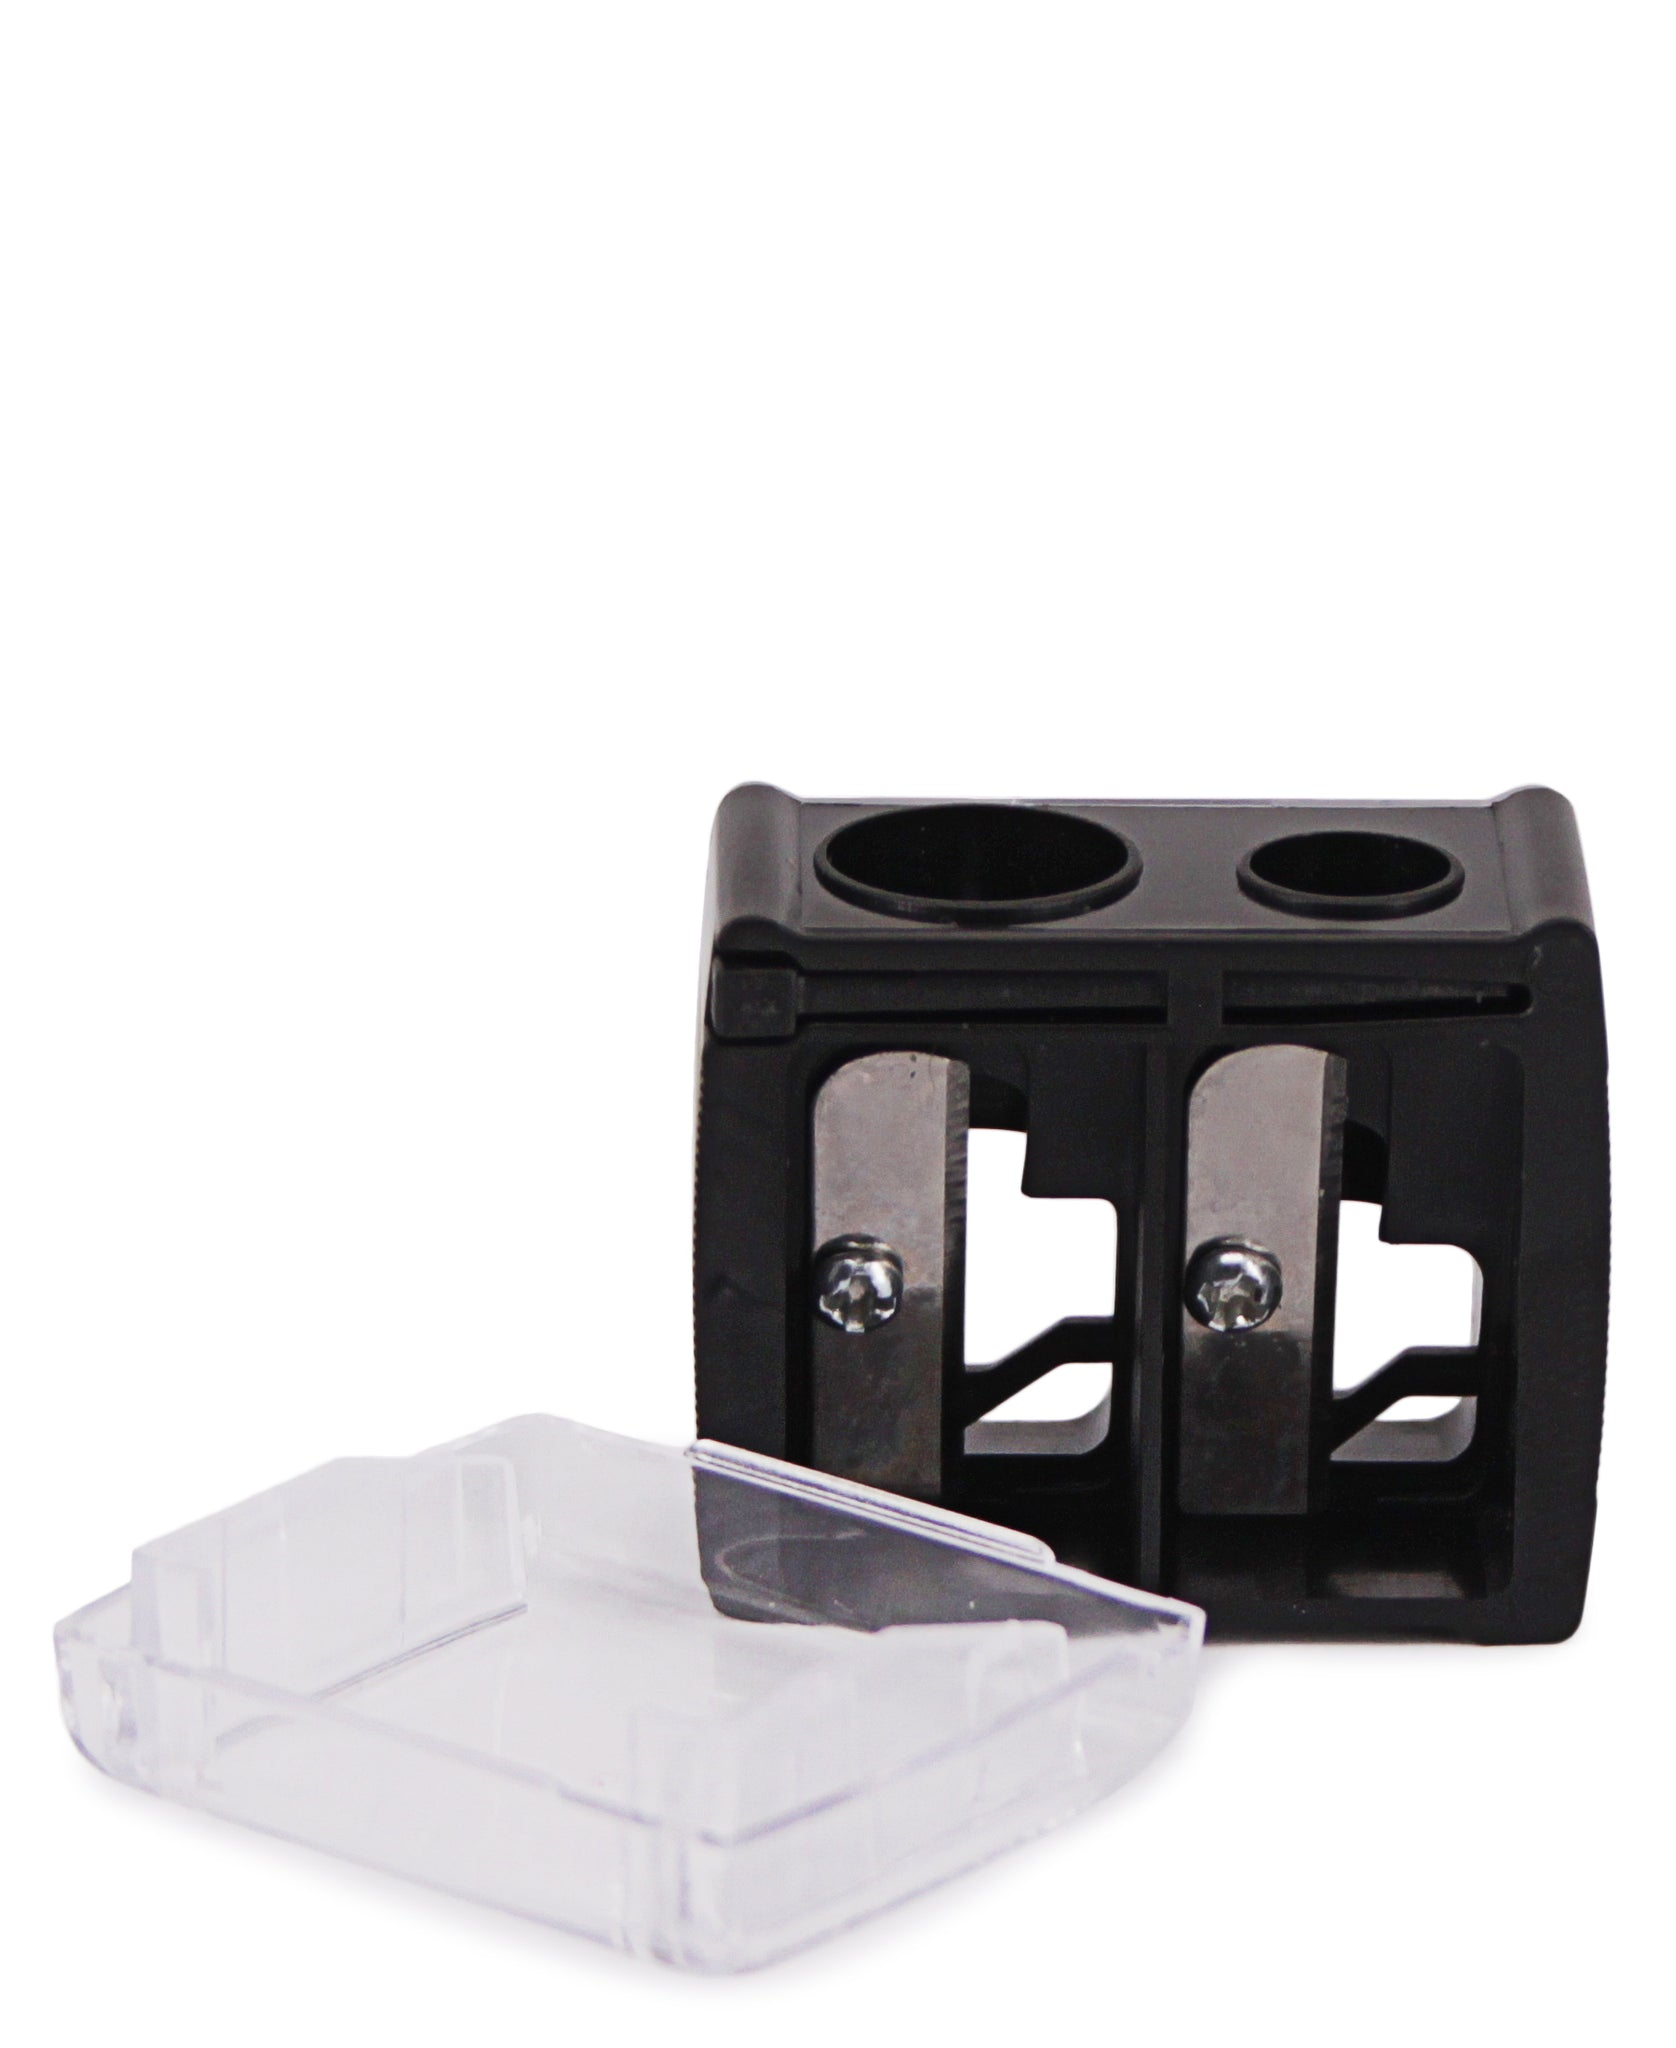 Makeup Pencil Sharpener - Black